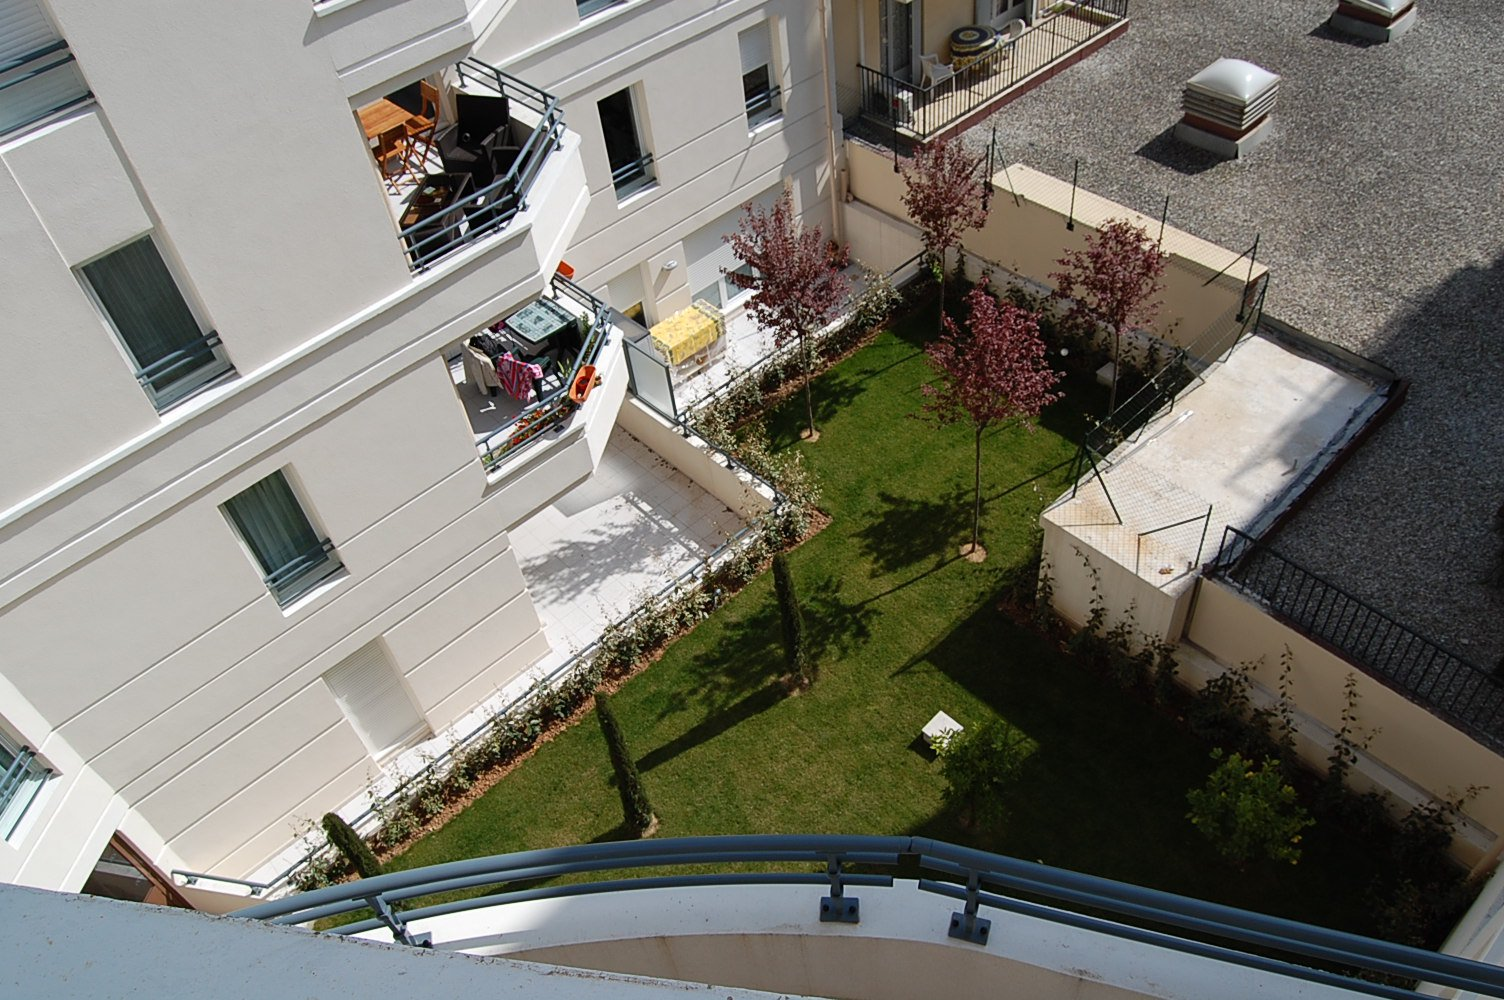 2 Bedroom/2 bathroom EXCEPTIONAL Apartment with over 50 M2 TERRACE in the centre of ANTIBES